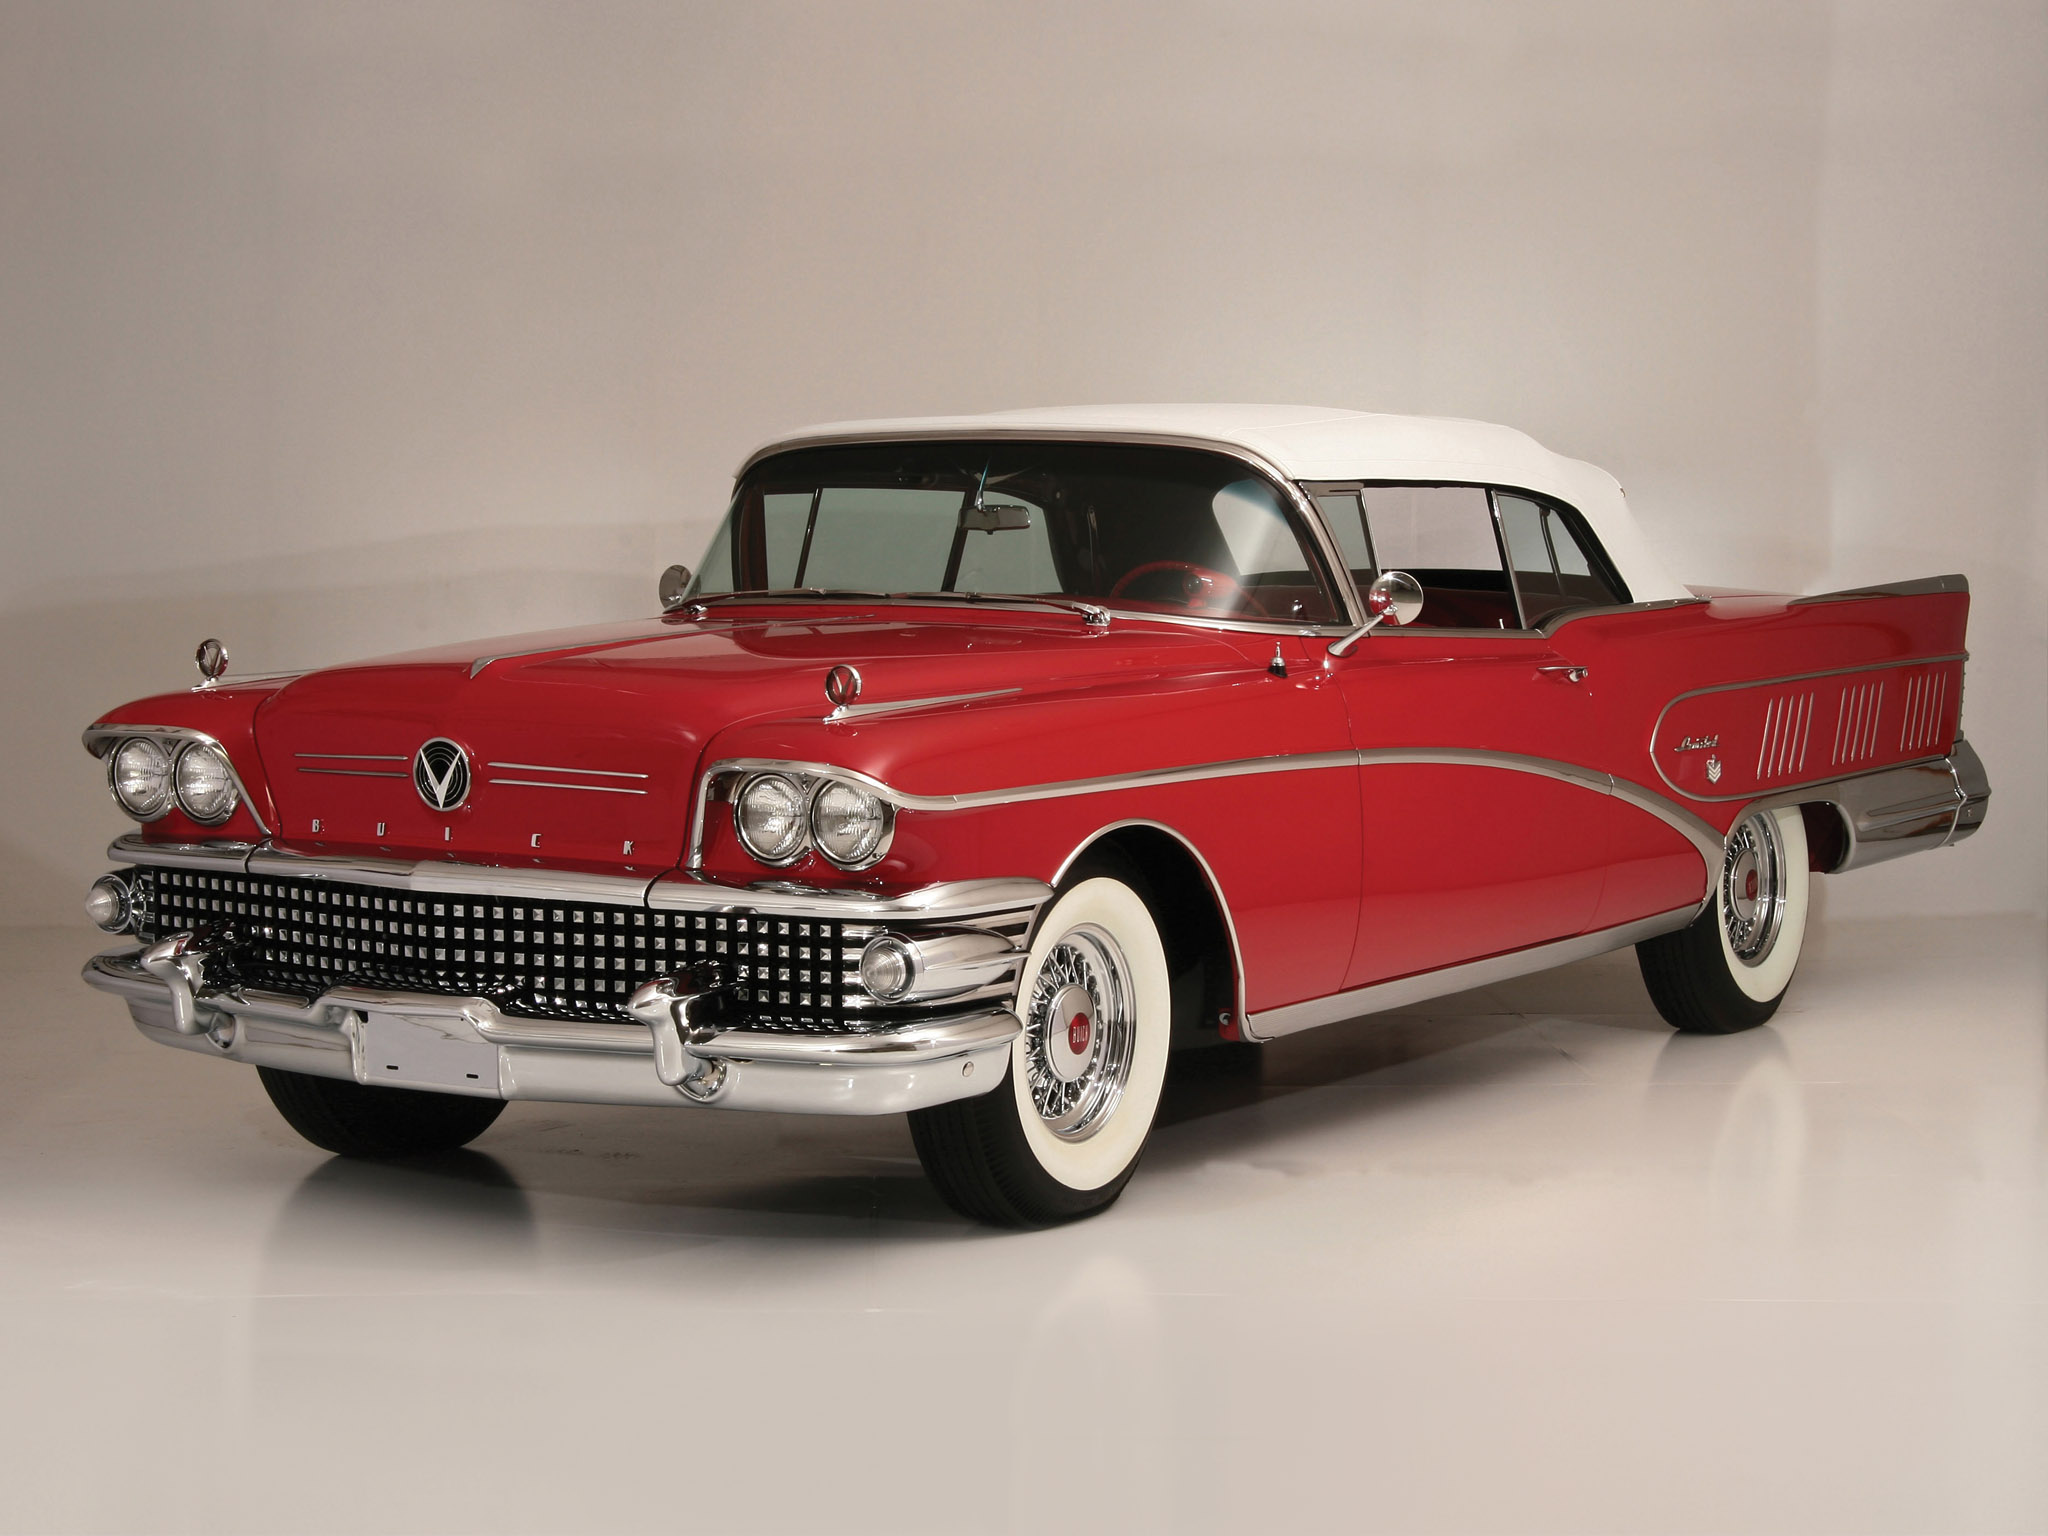 1958 Buick Limited Convertible (756-4867X) luxury retro d wallpaper |  2048x1536 | 158874 | WallpaperUP